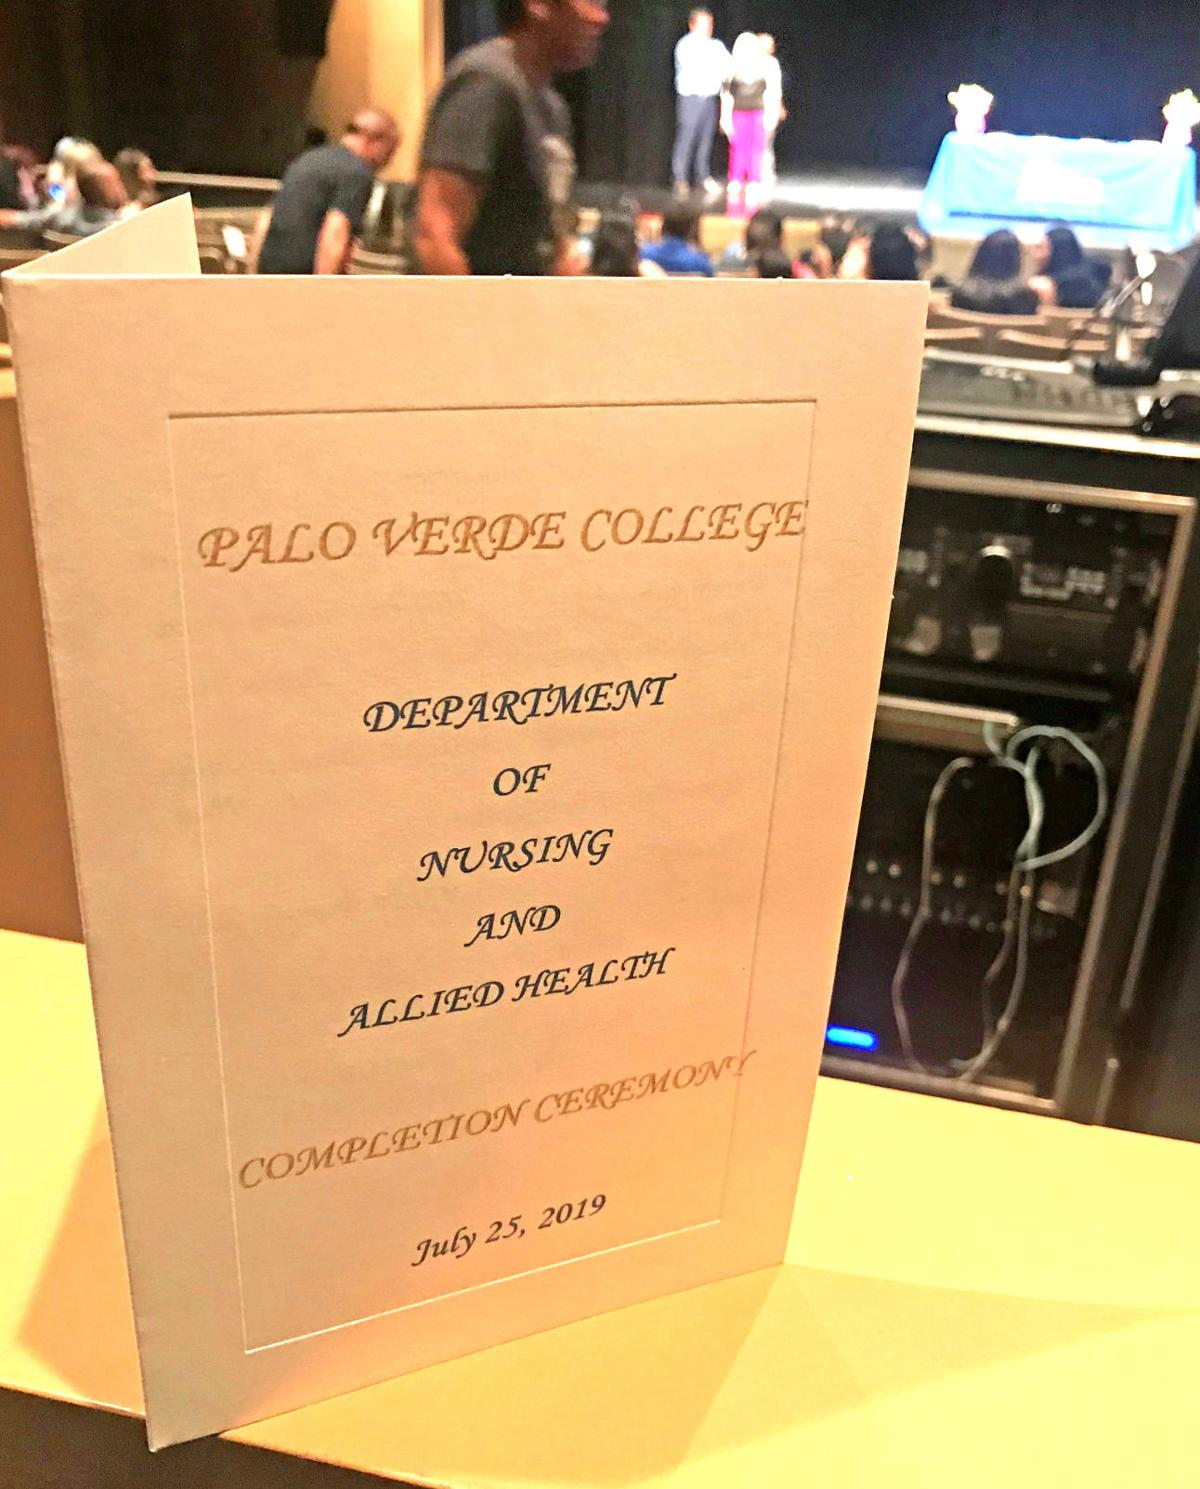 13 local high schoolers earn CNA pins: Ceremony culmination of new Palo Verde College-PVUSD program